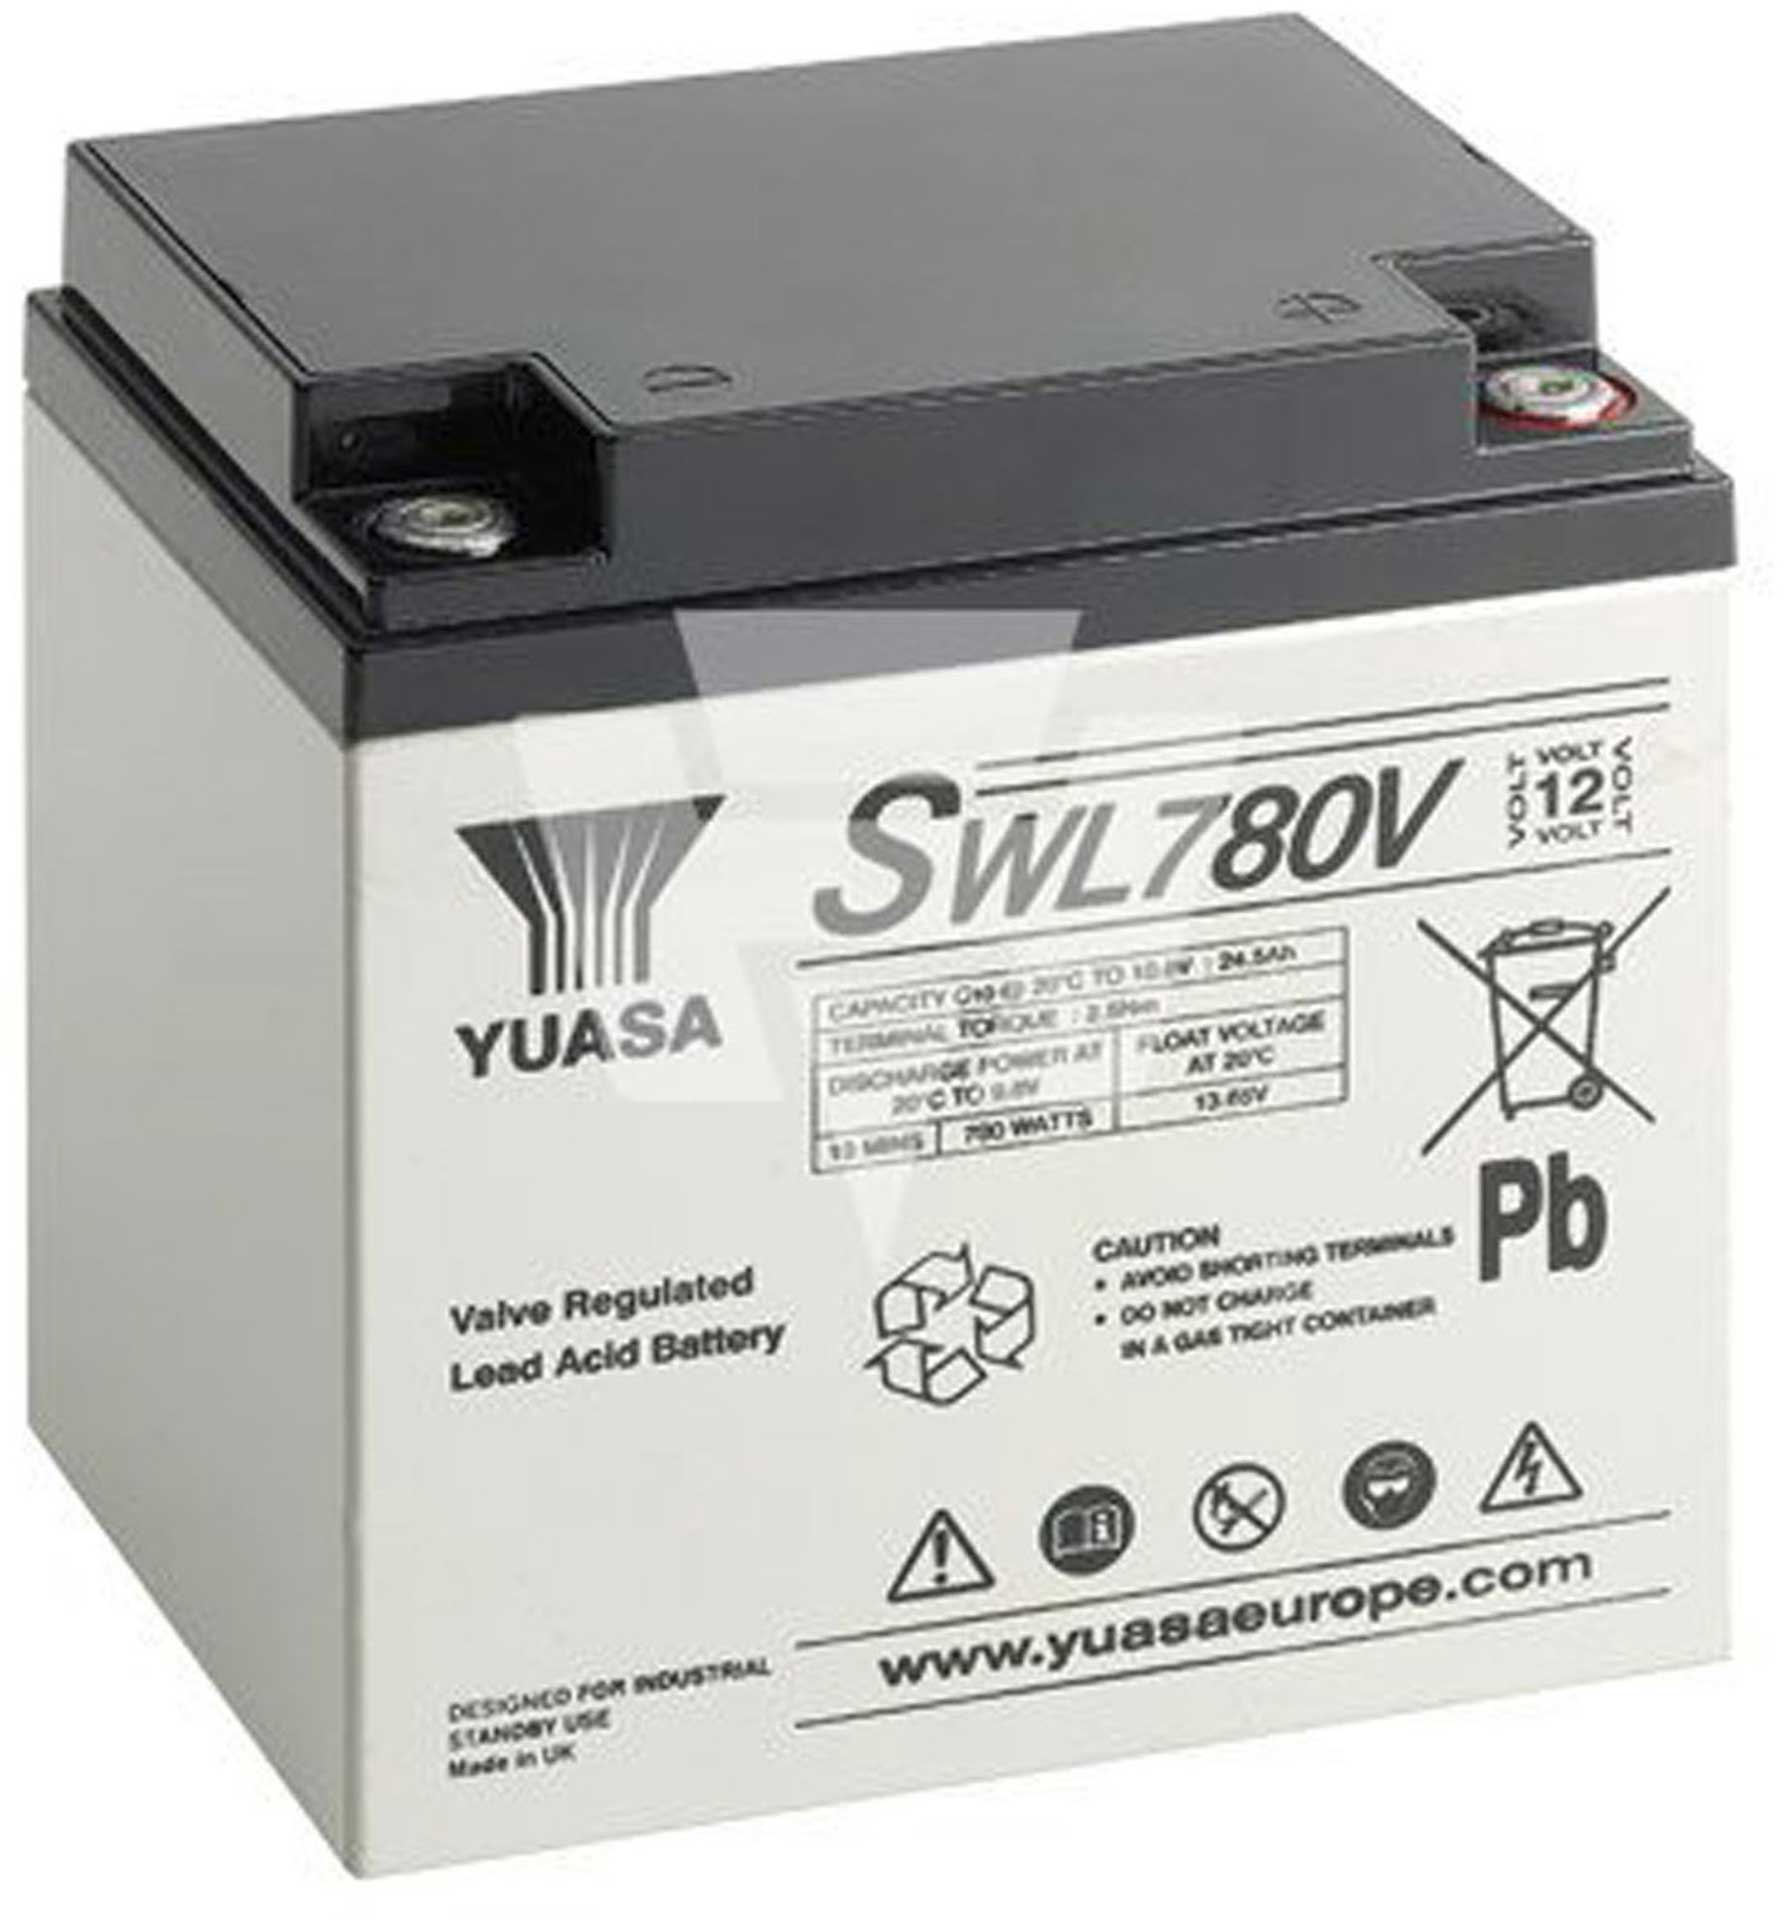 YUASA LEAD-ACID BATTERY SWL780V PB 12V/28800MAH